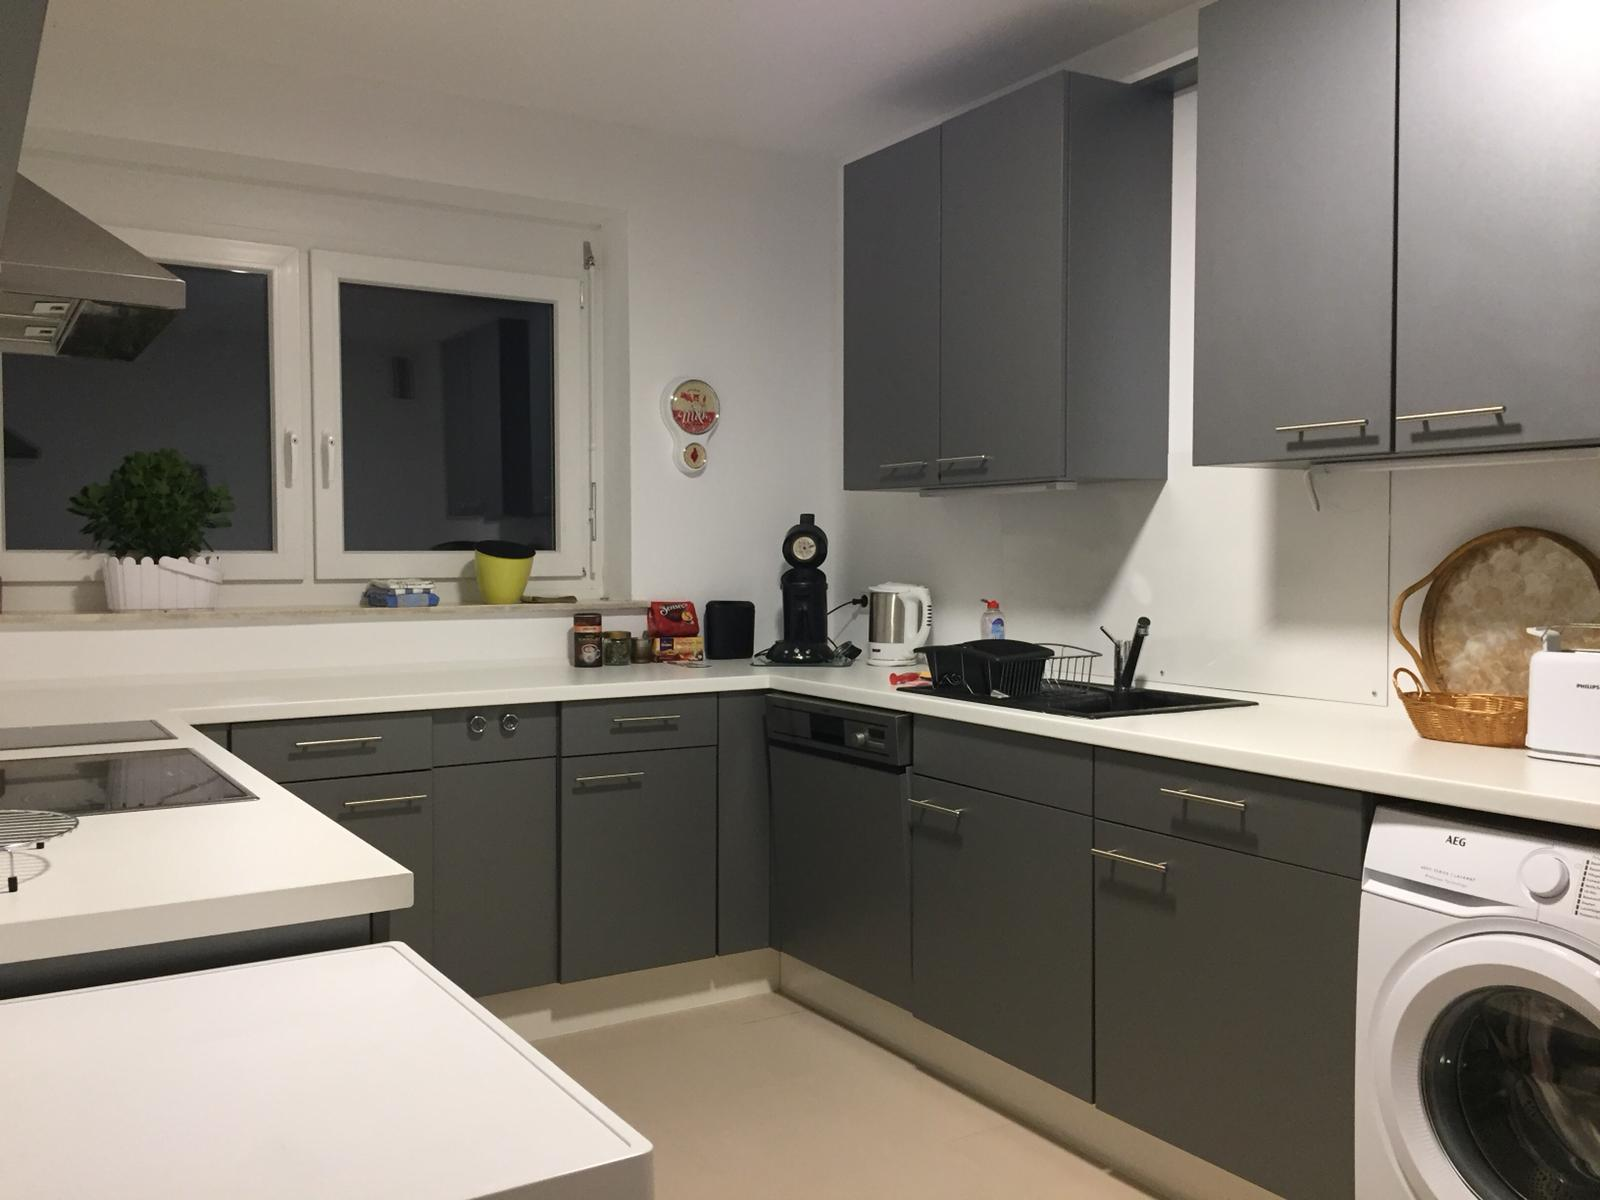 The washing machine is part of the kitchen